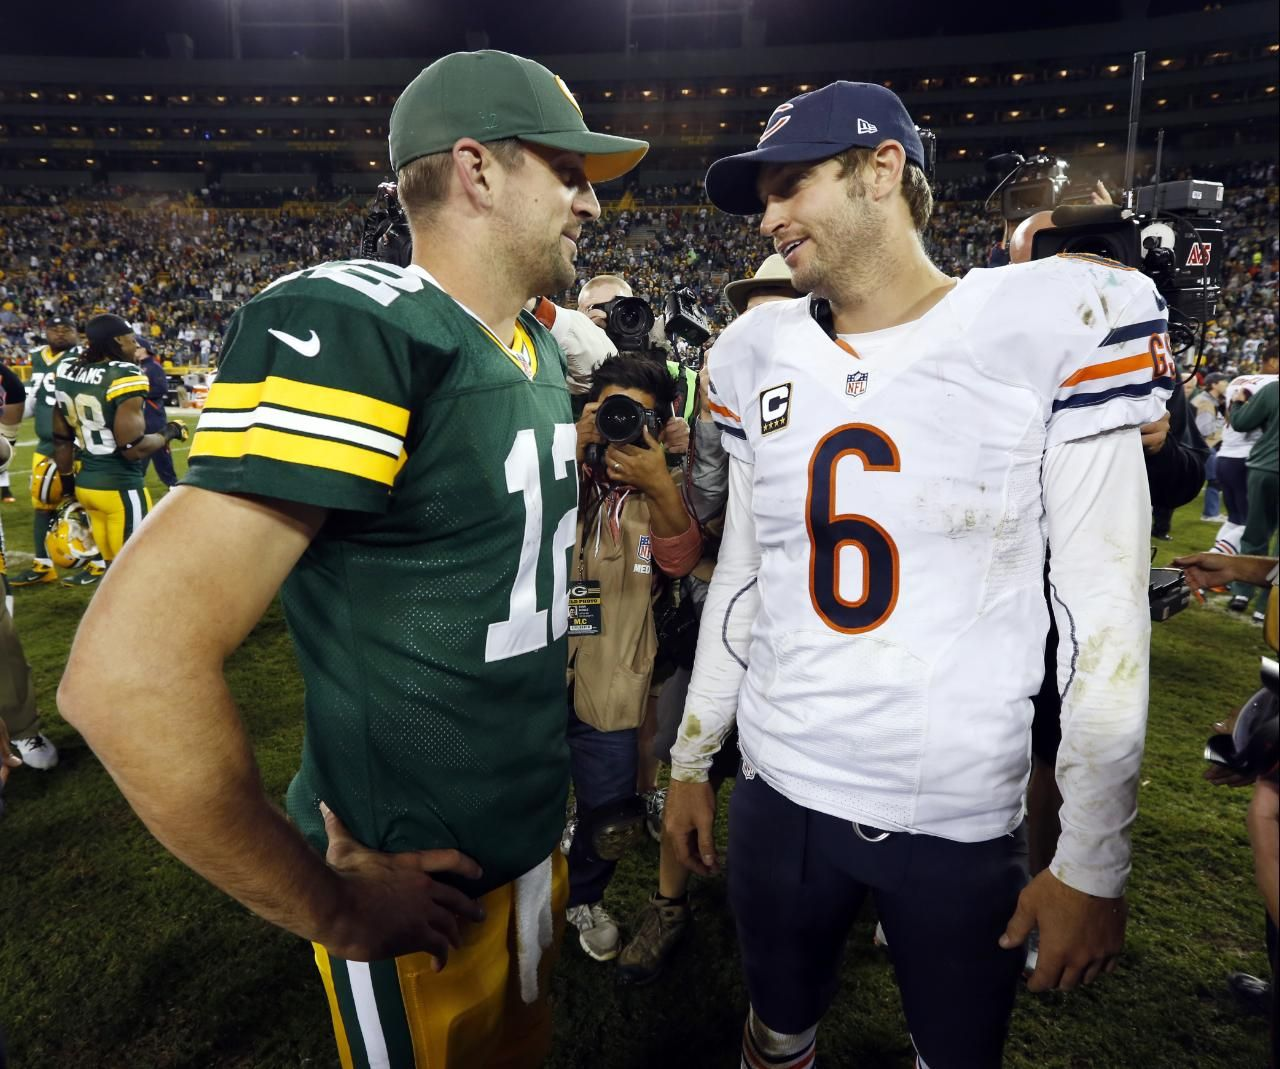 Best Of 2012 Week 2 Nfl Football Games Green Bay Packers Aaron Rodgers Chicago Bears